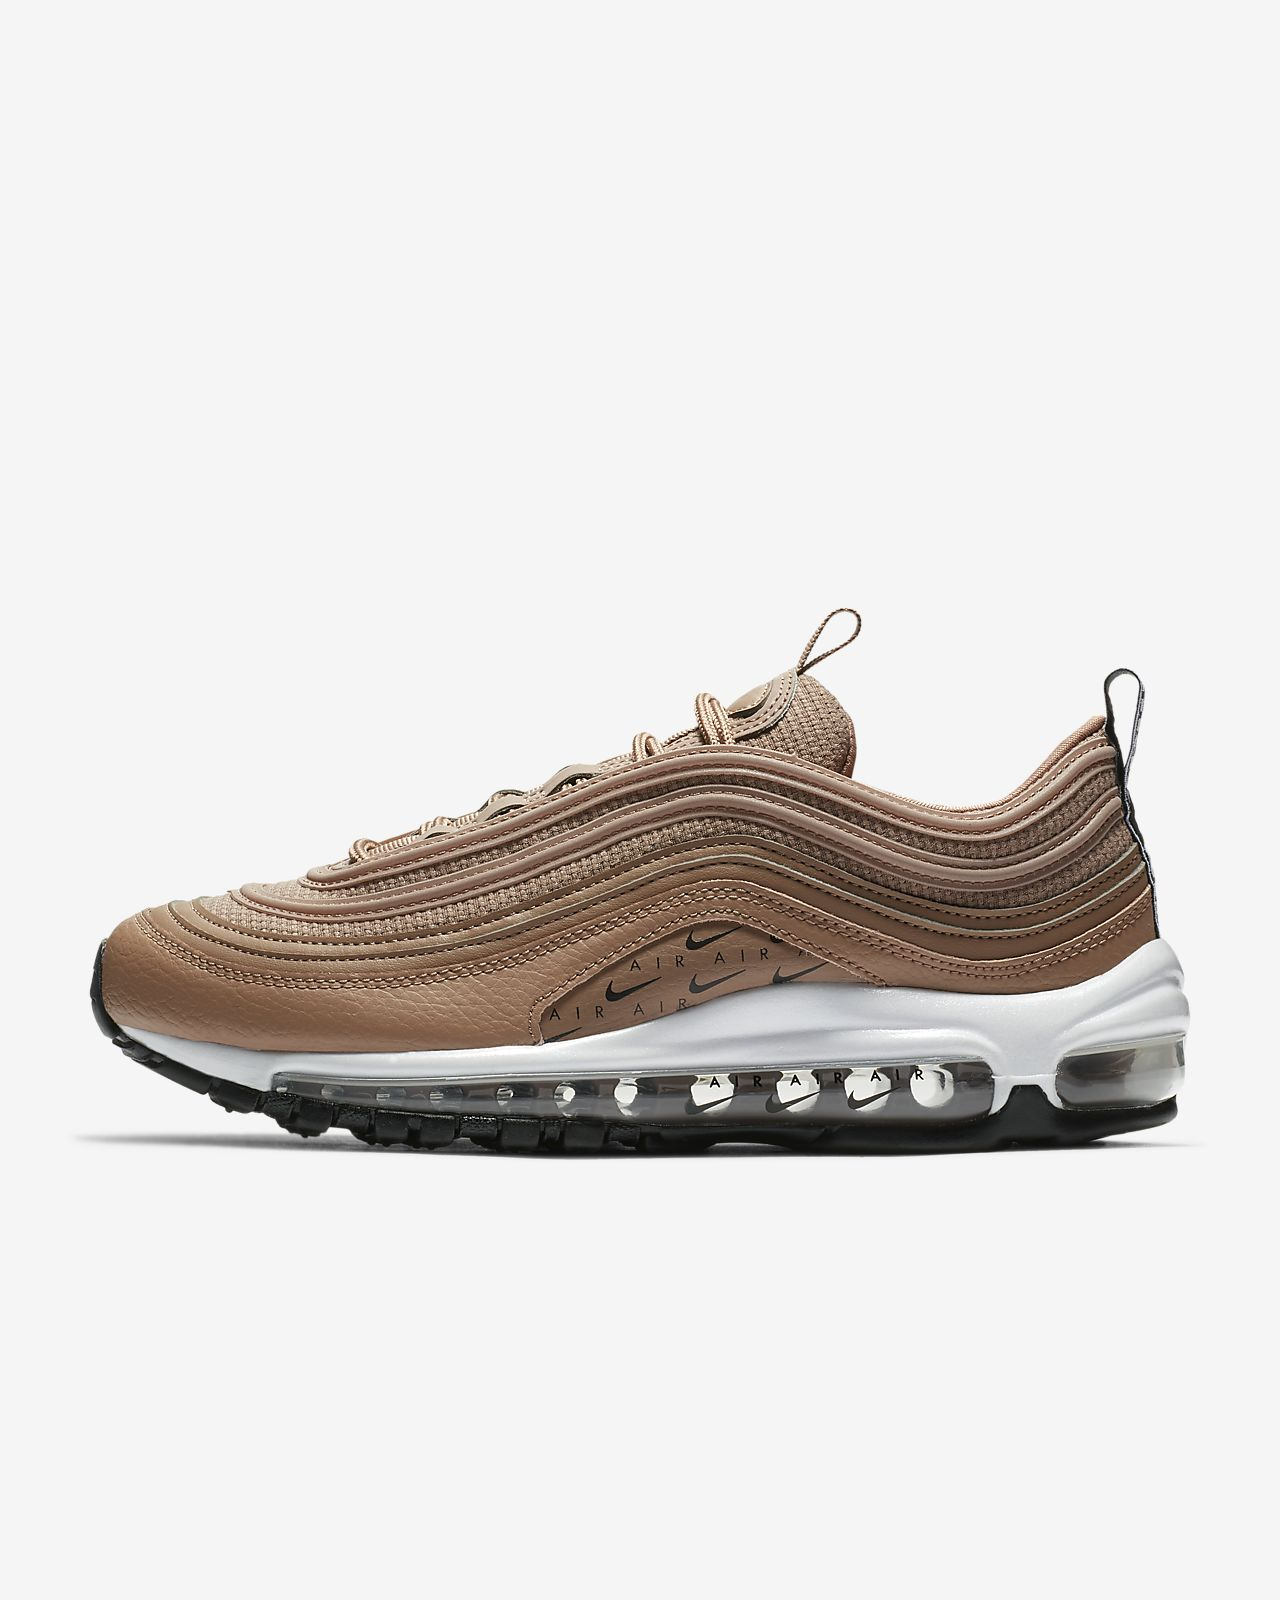 Sapatilhas Nike Air Max 97 LX Overbranded para mulher